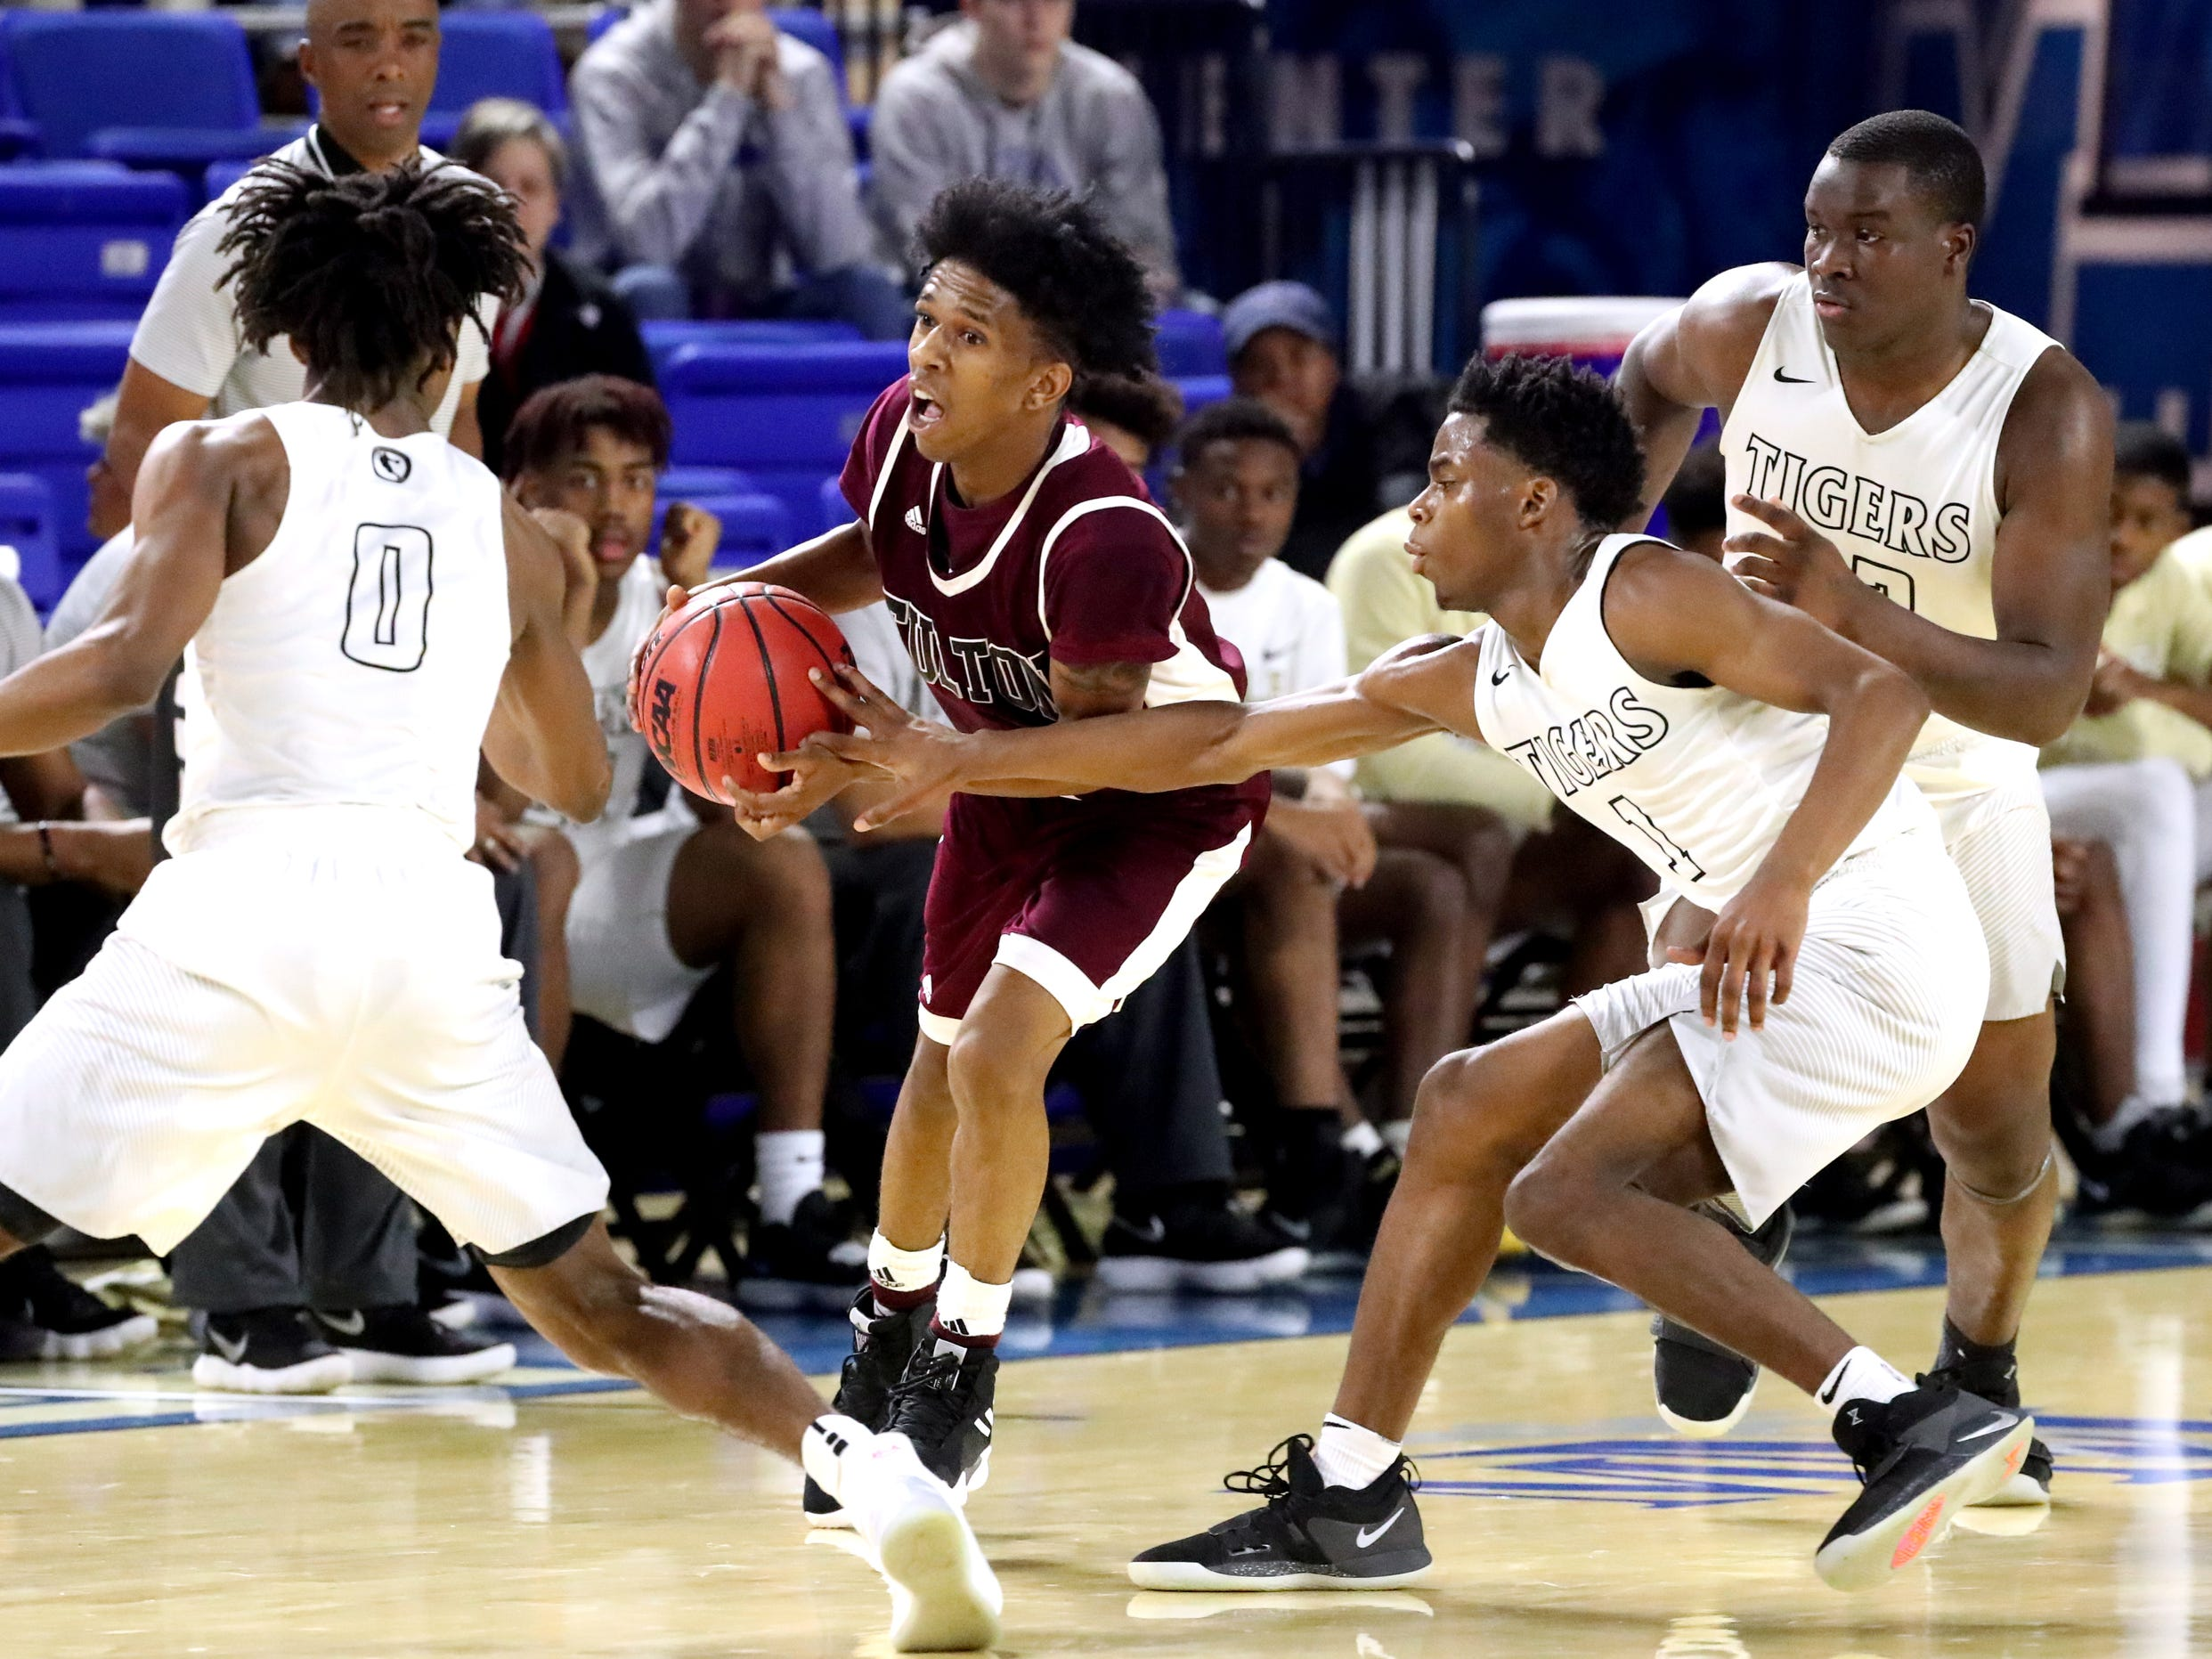 Fulton's Edward Lacy (4) brings the ball up court as he is guarded by Mitchell's Michael Rice (0), Mikell Rice (1) and Cameron Powers (32) during the quarterfinal round of the TSSAA Class AA Boys State Tournament, on Wednesday, March 13, 2019, at Murphy Center in Murfreesboro, Tenn.